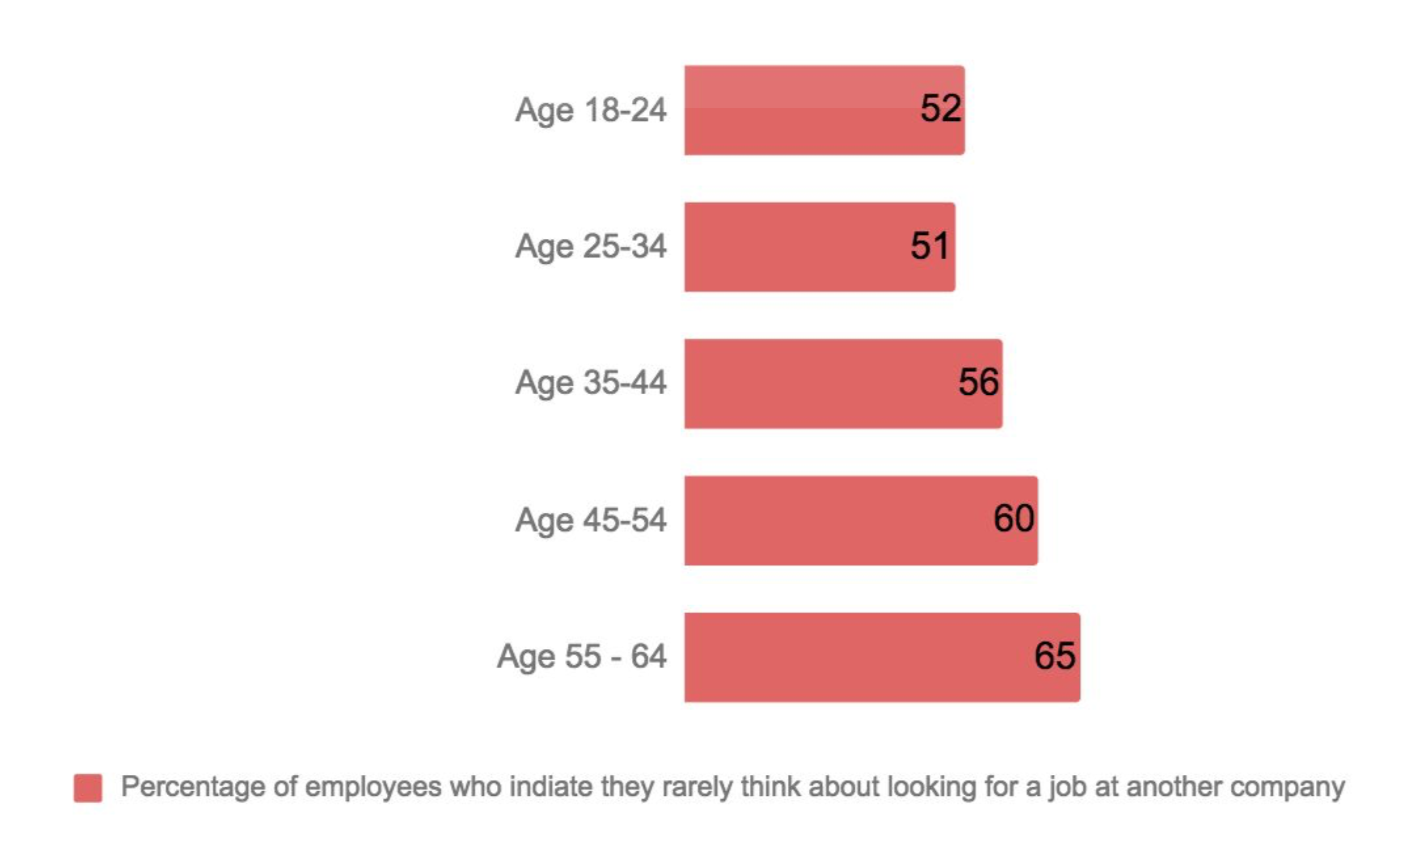 Older employees are less likely to look for another job